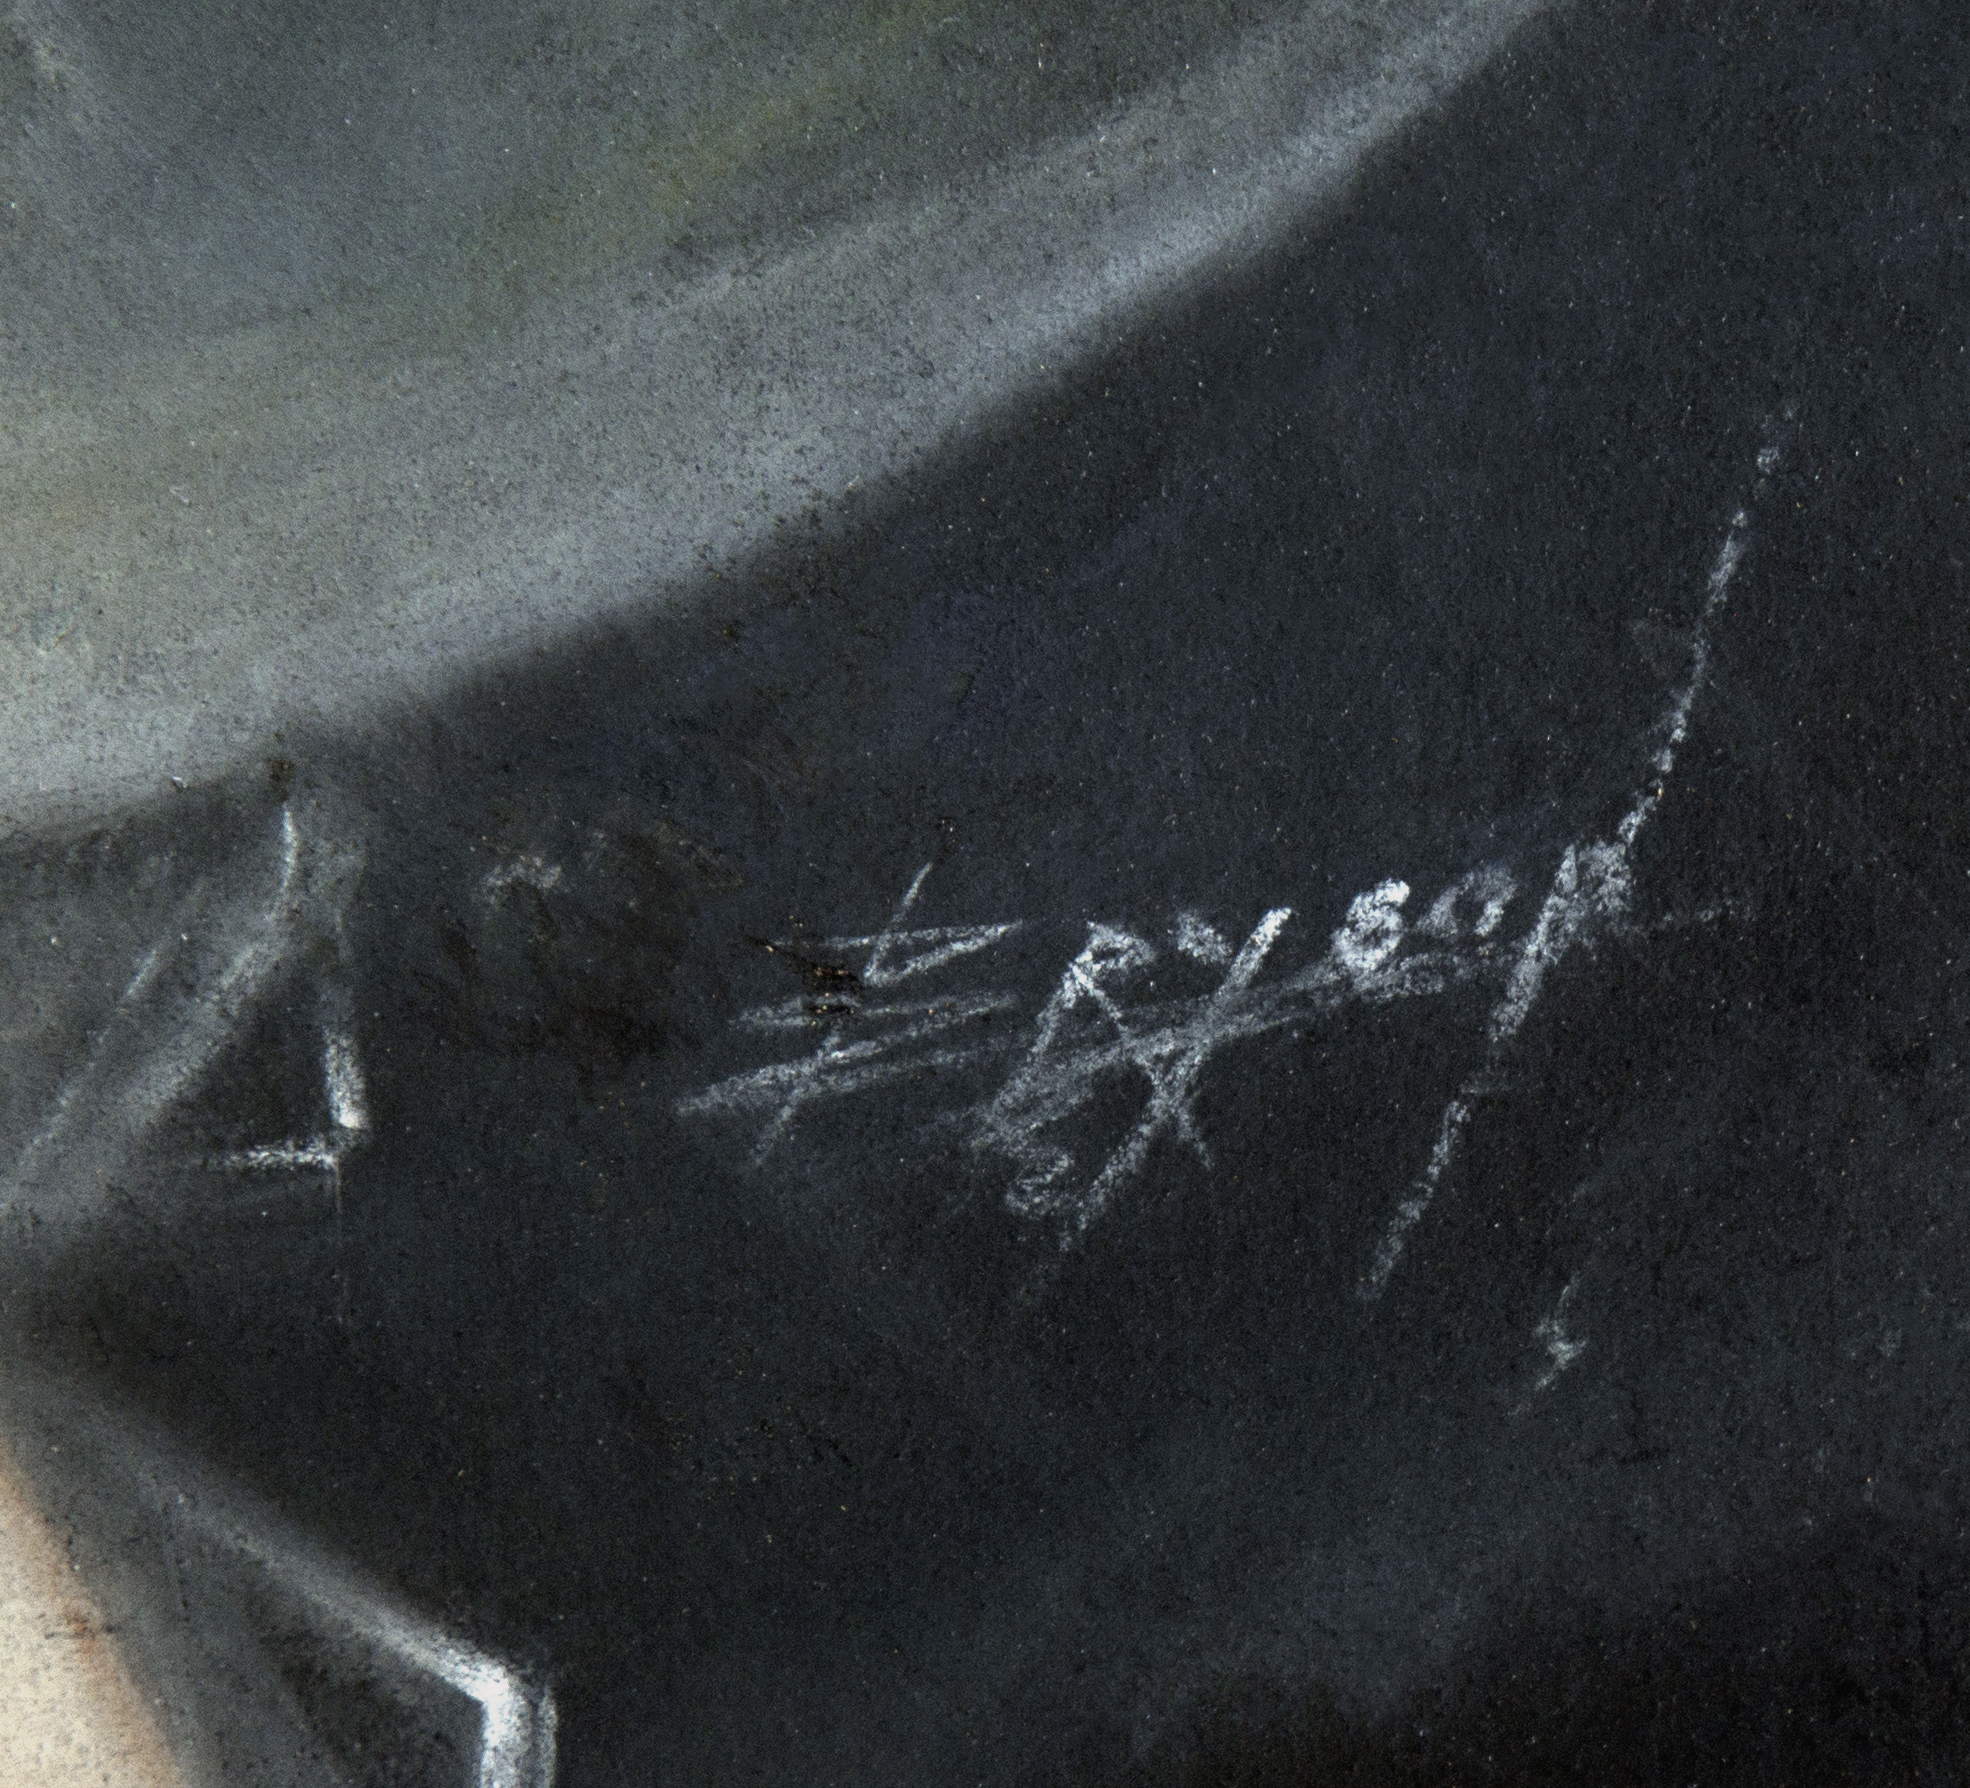 The artist's signature, lower right